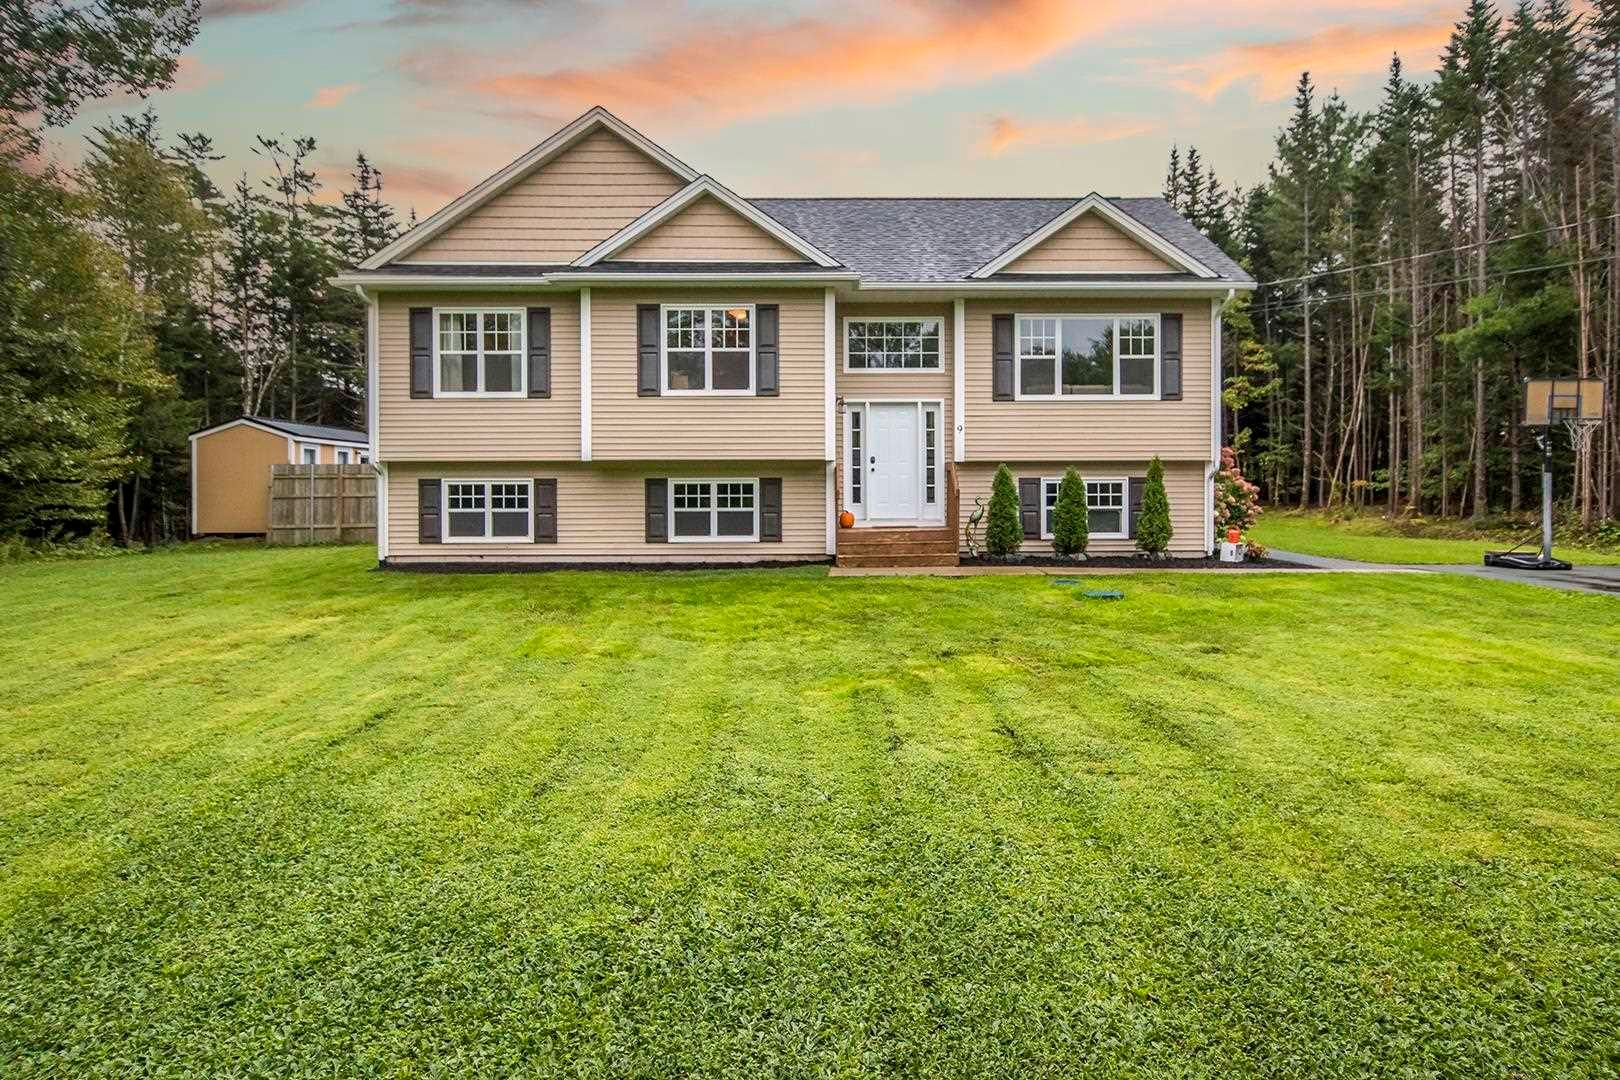 Main Photo: 9 Norwood Court in Porters Lake: 31-Lawrencetown, Lake Echo, Porters Lake Residential for sale (Halifax-Dartmouth)  : MLS®# 202124894